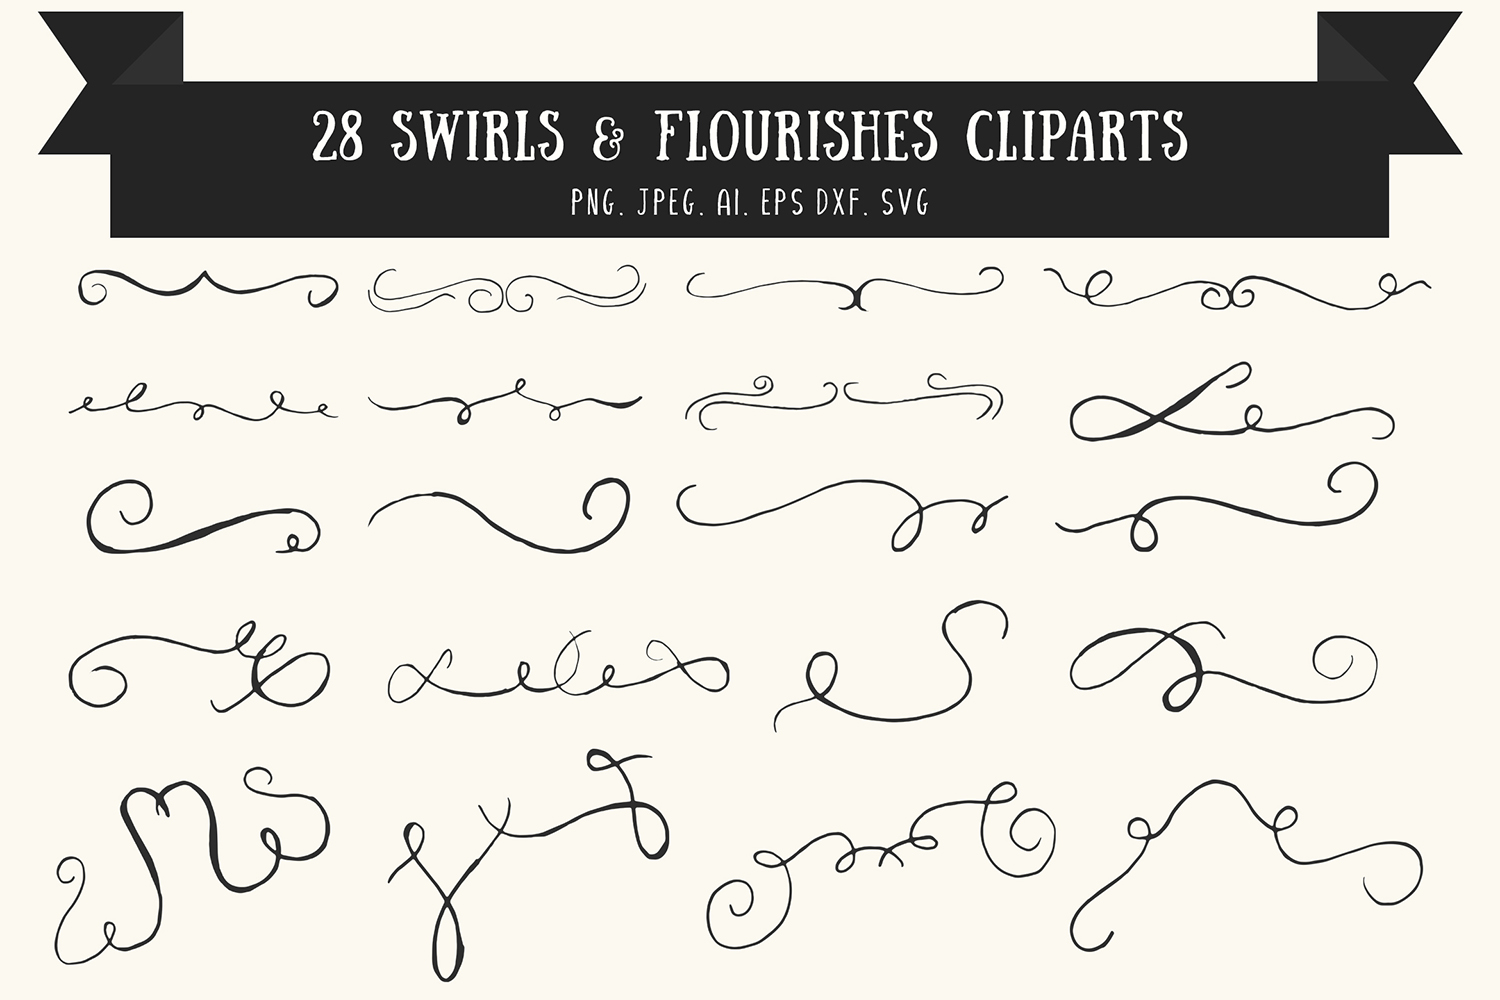 Download Free Swirls Flourishes Cliparts Ver 1 Graphic By Creative Tacos for Cricut Explore, Silhouette and other cutting machines.